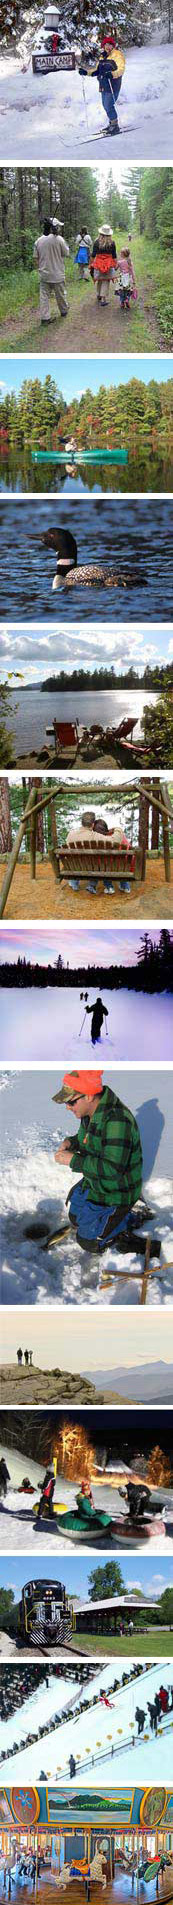 Adirondack Birding Fly Fishing, Boating  Attractions Ski Jouring Cross Country Skiing Snowshoeing